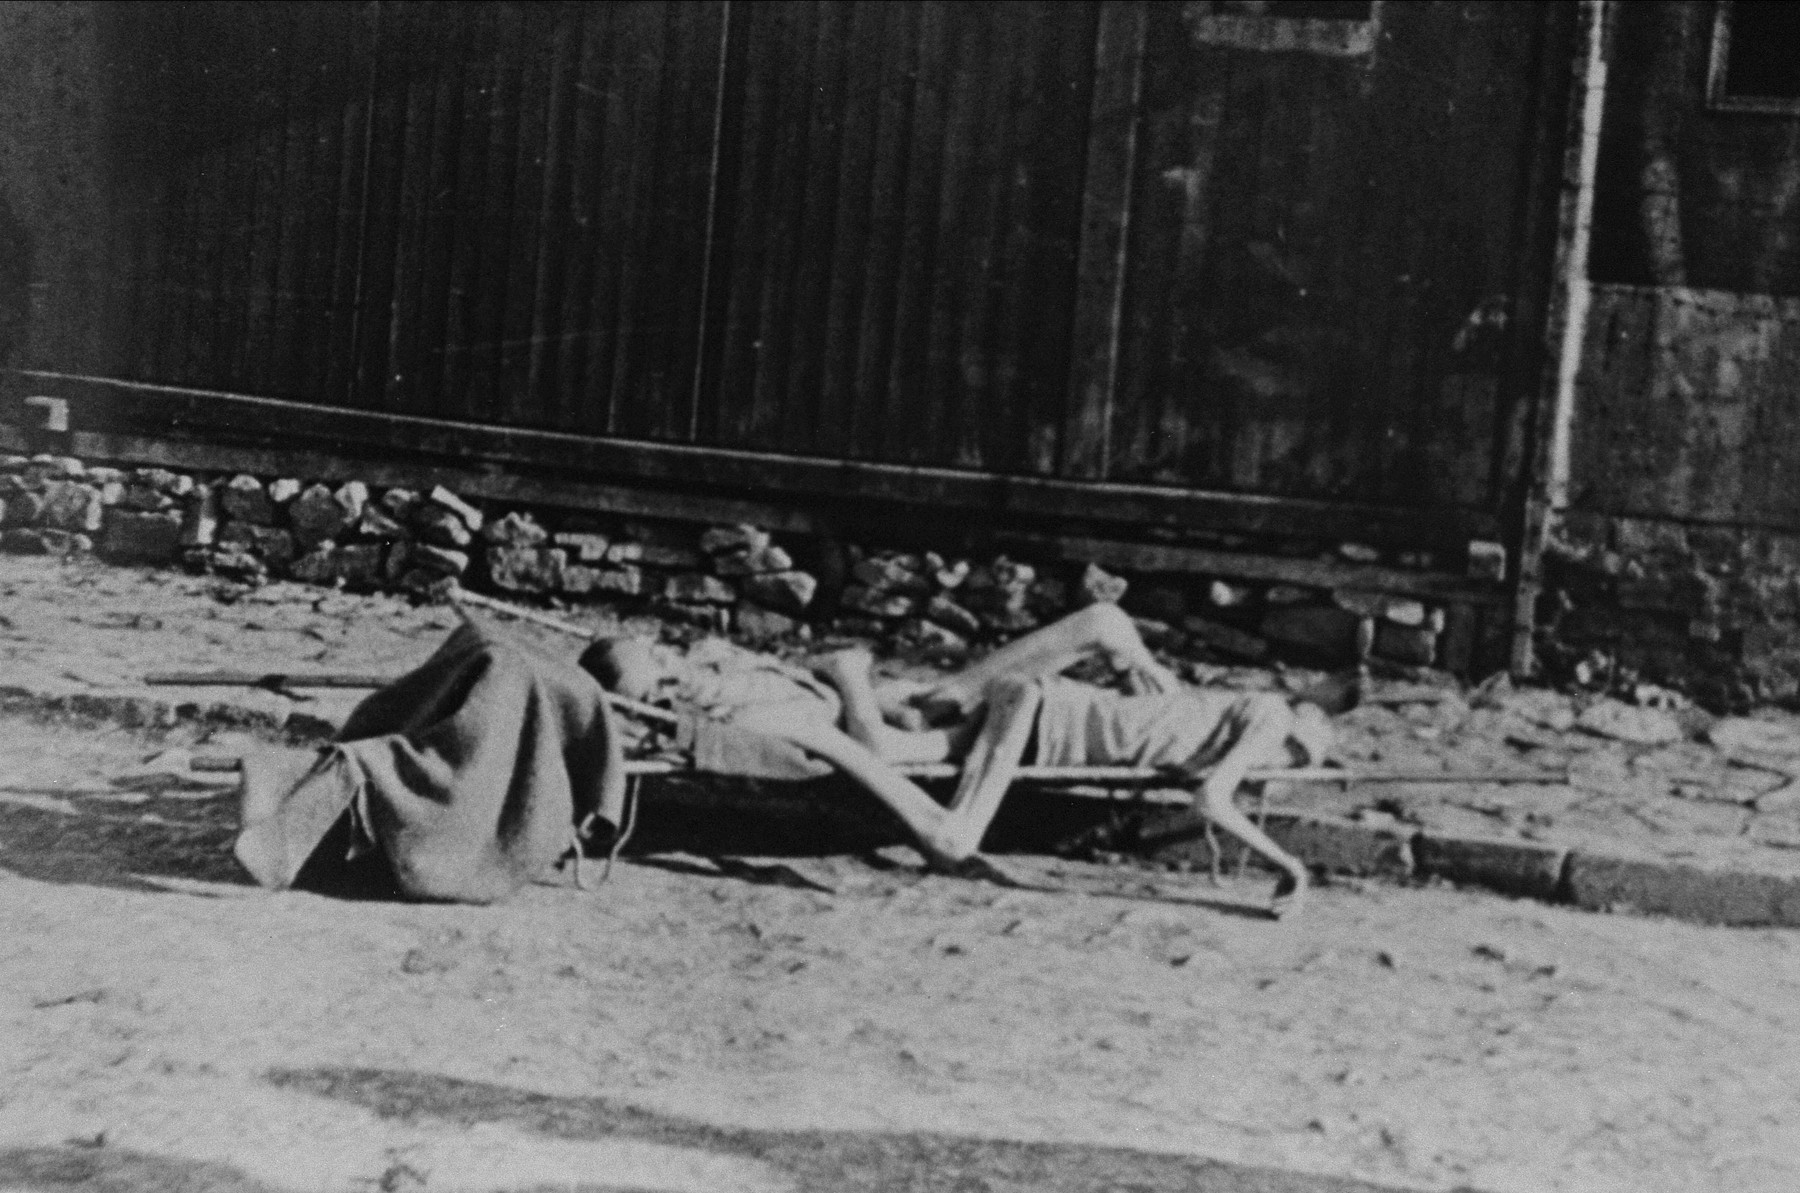 Two corpses on a stretcher in front of a barracks awaiting burial.